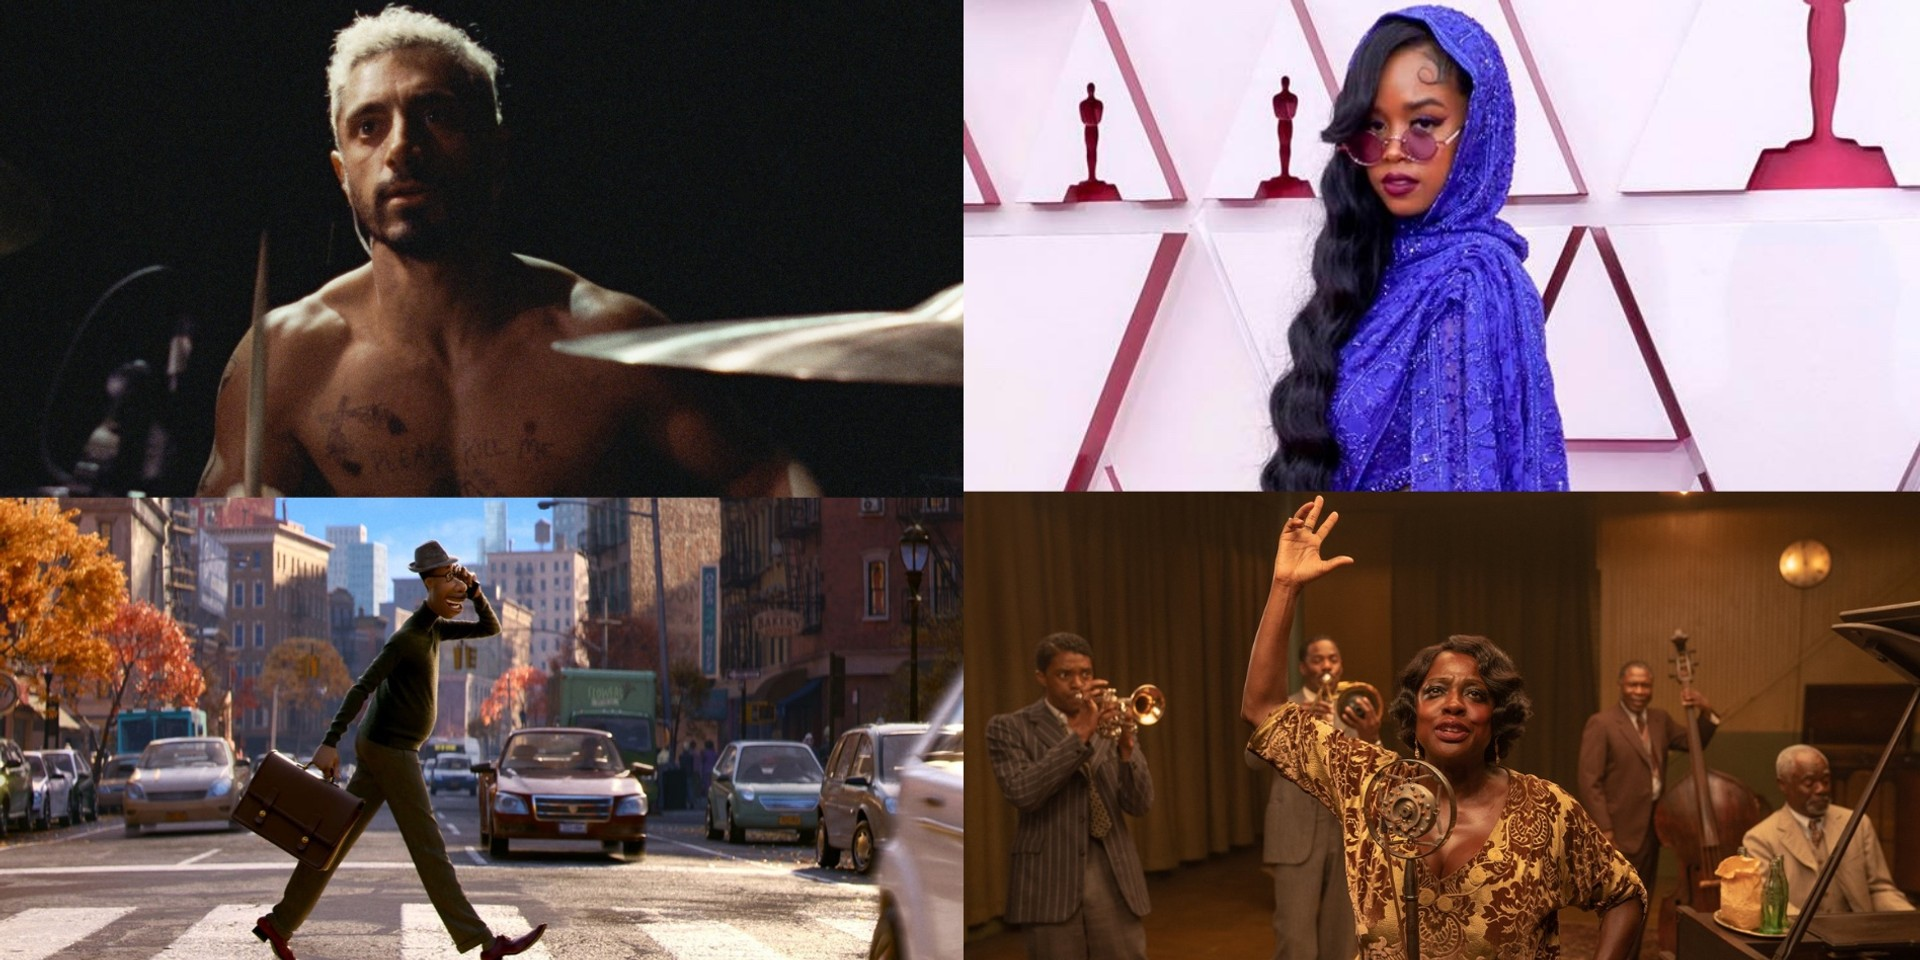 Here are the winners of the 93rd Academy Awards — Soul, Sound of Metal, H.E.R., Ma Rainey's Black Bottom, and more